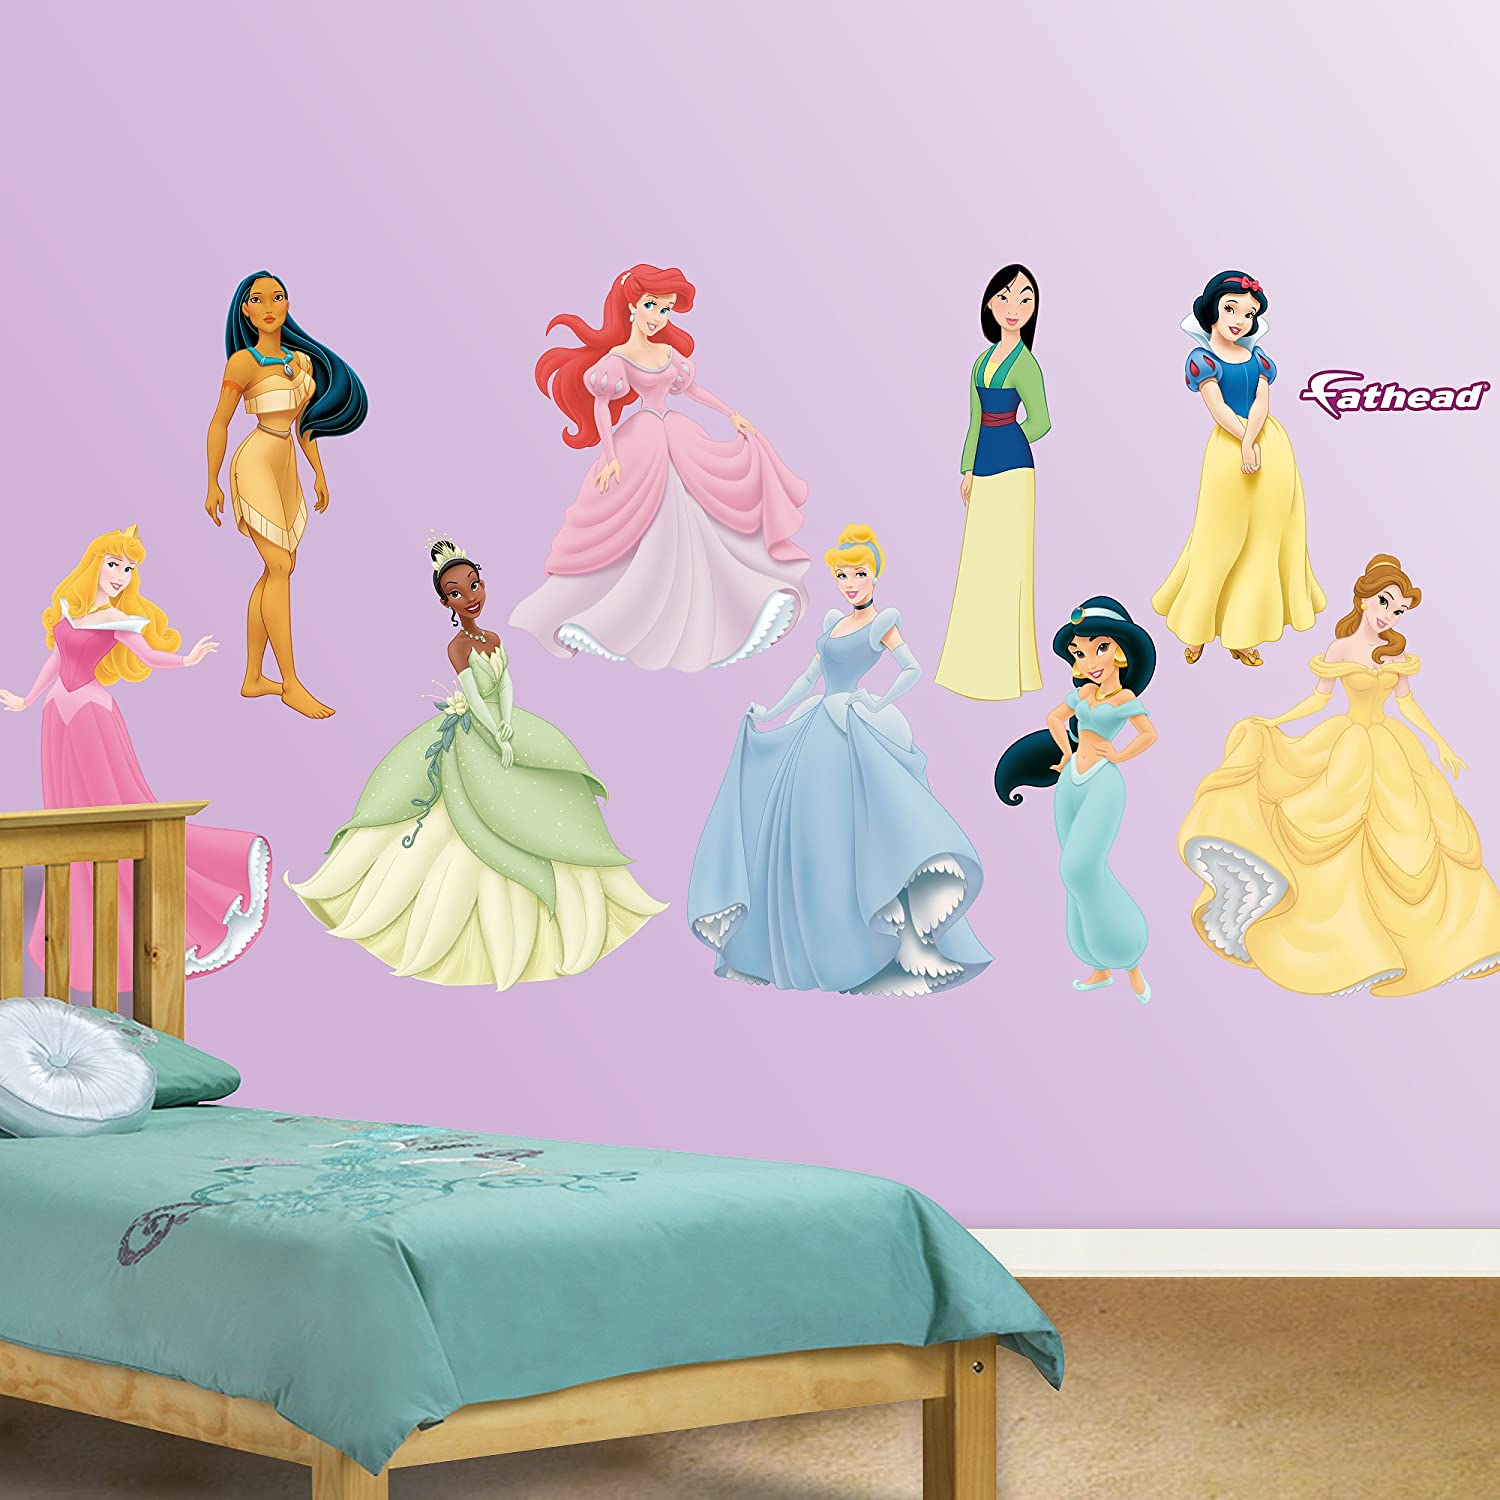 Amazon fathead disney princess collection graphic wall dcor amazon fathead disney princess collection graphic wall dcor home kitchen amipublicfo Gallery